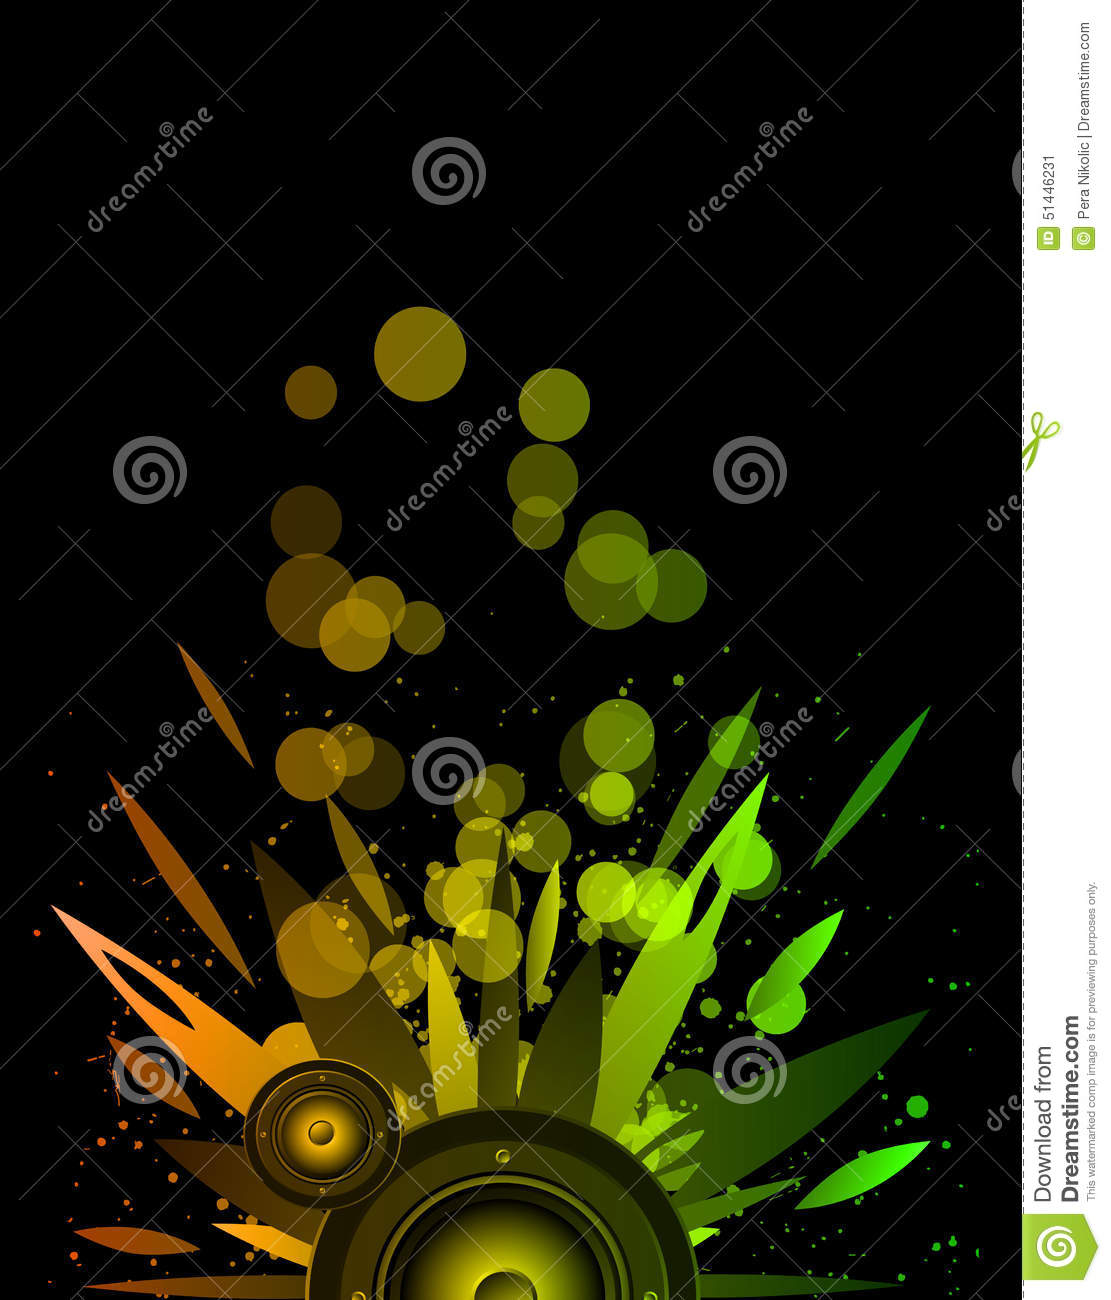 Background For Music Event Flyer Stock Vector Illustration Of